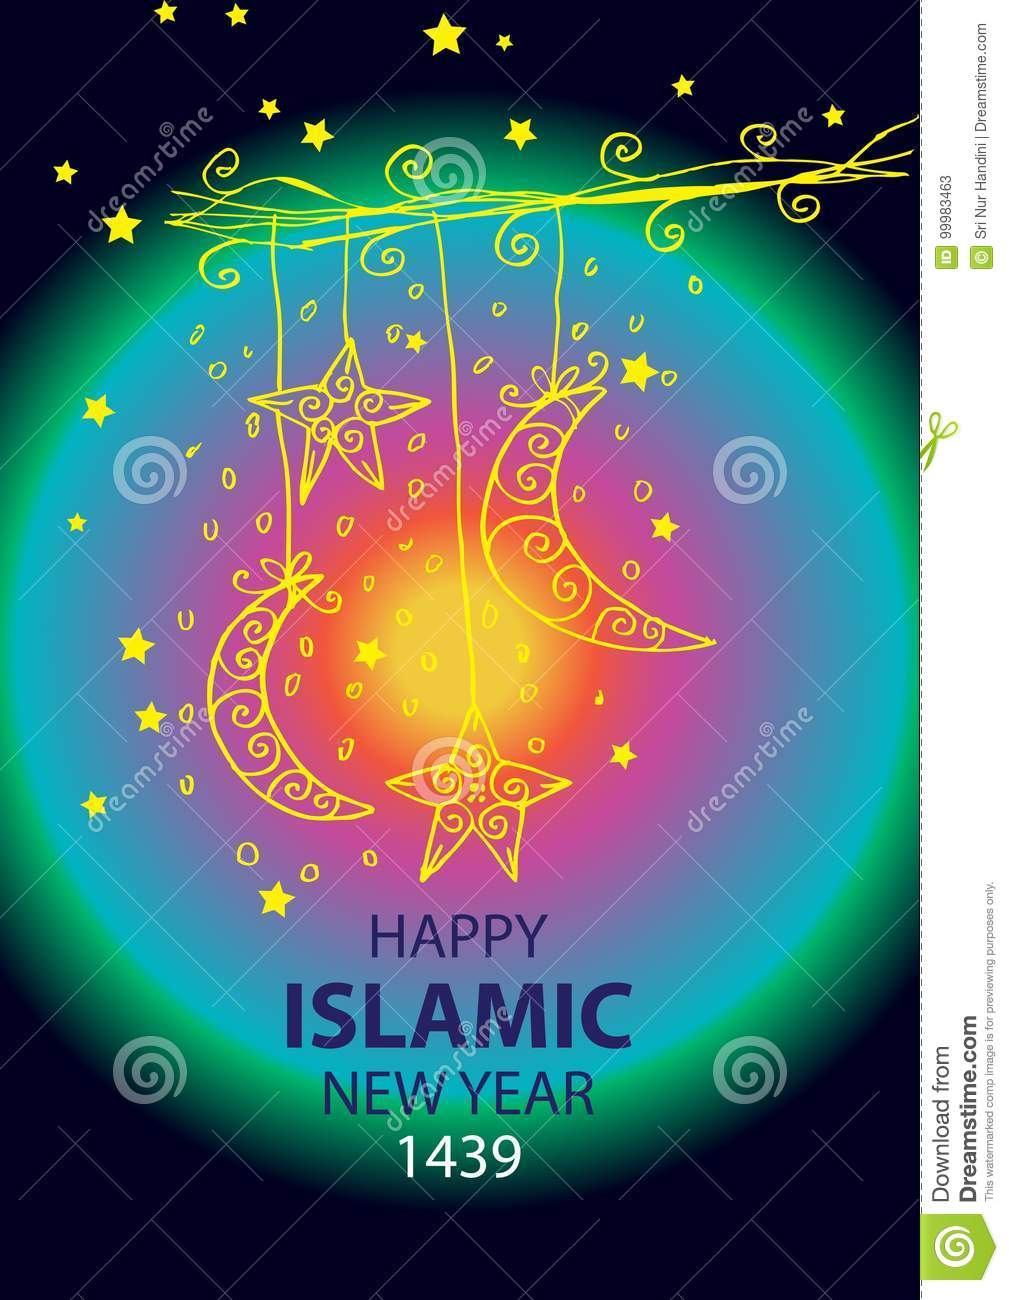 Happy Muharram1439 Hijri Islamic New Year Stock Illustration